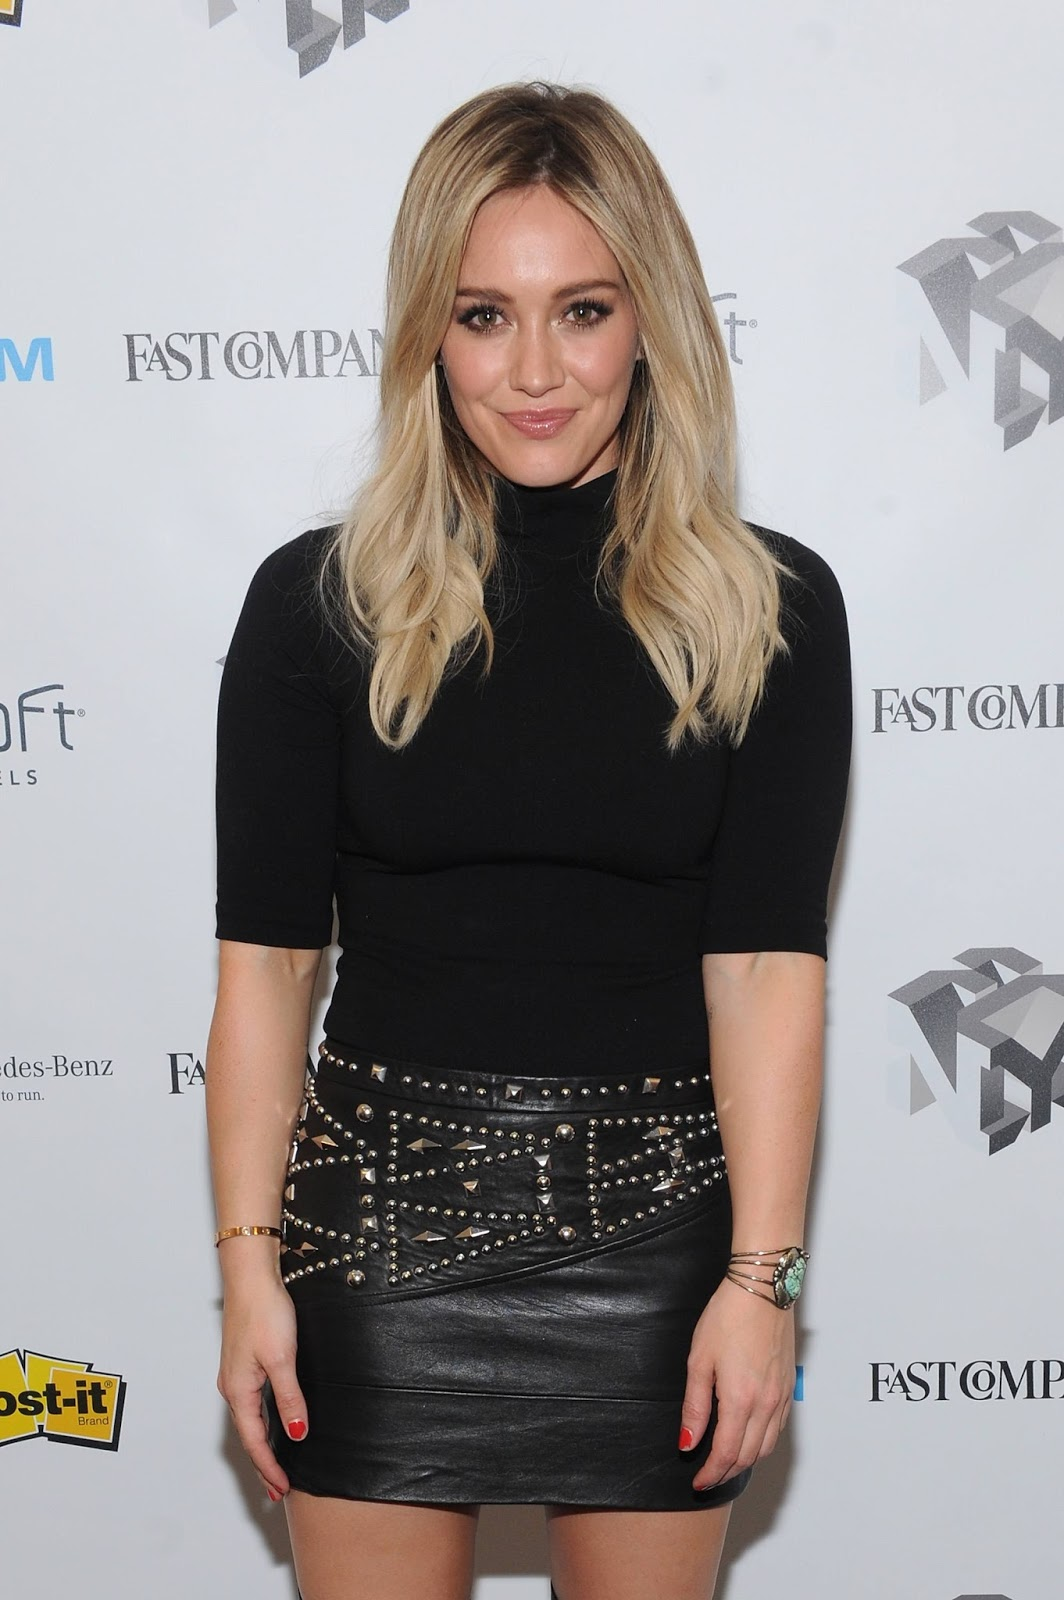 Lovely Ladies in Leather: Hilary Duff in a leather mini-skirt Hilary Duff